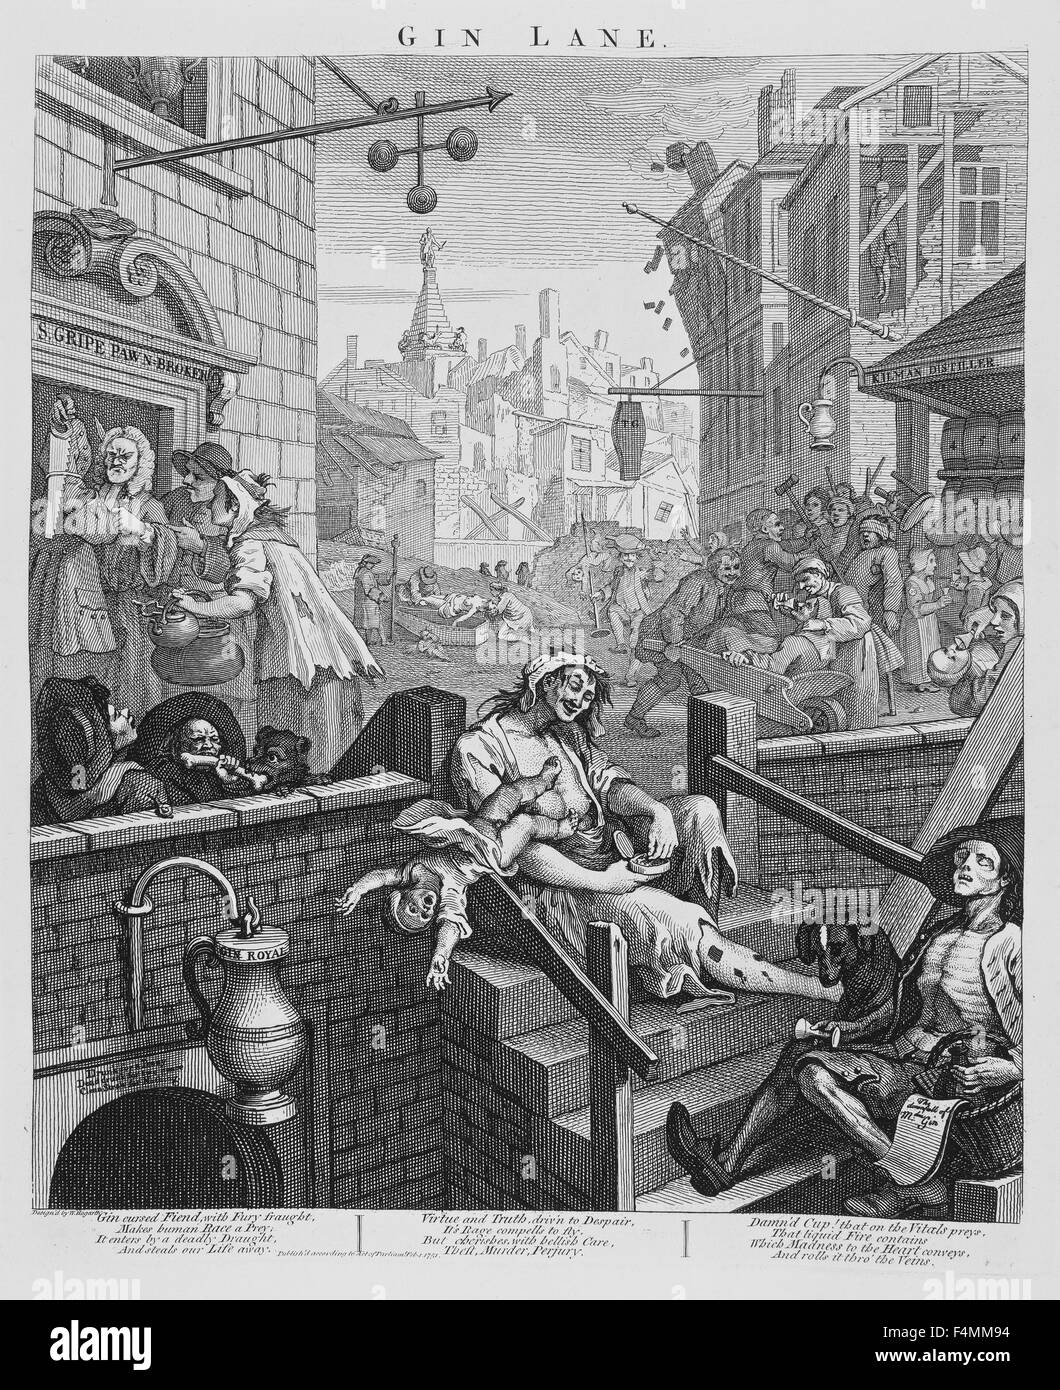 GIN LANE engraving by William Hogarth about 1750 Stock Photo